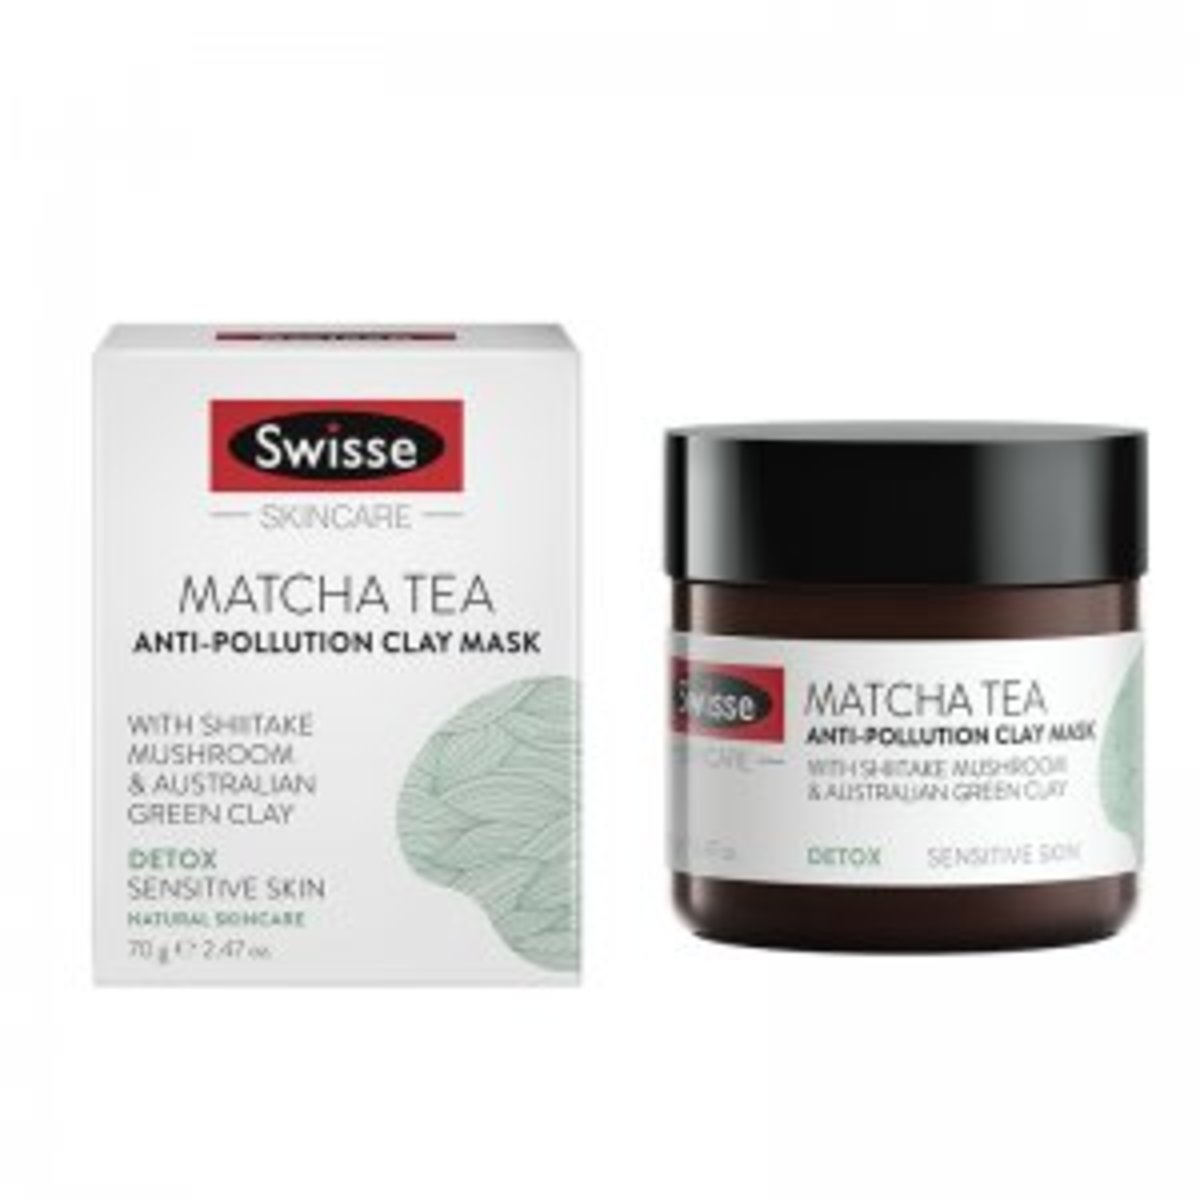 Matcha Tea Anti Pollution Clay Mask 70g (parallel goods)